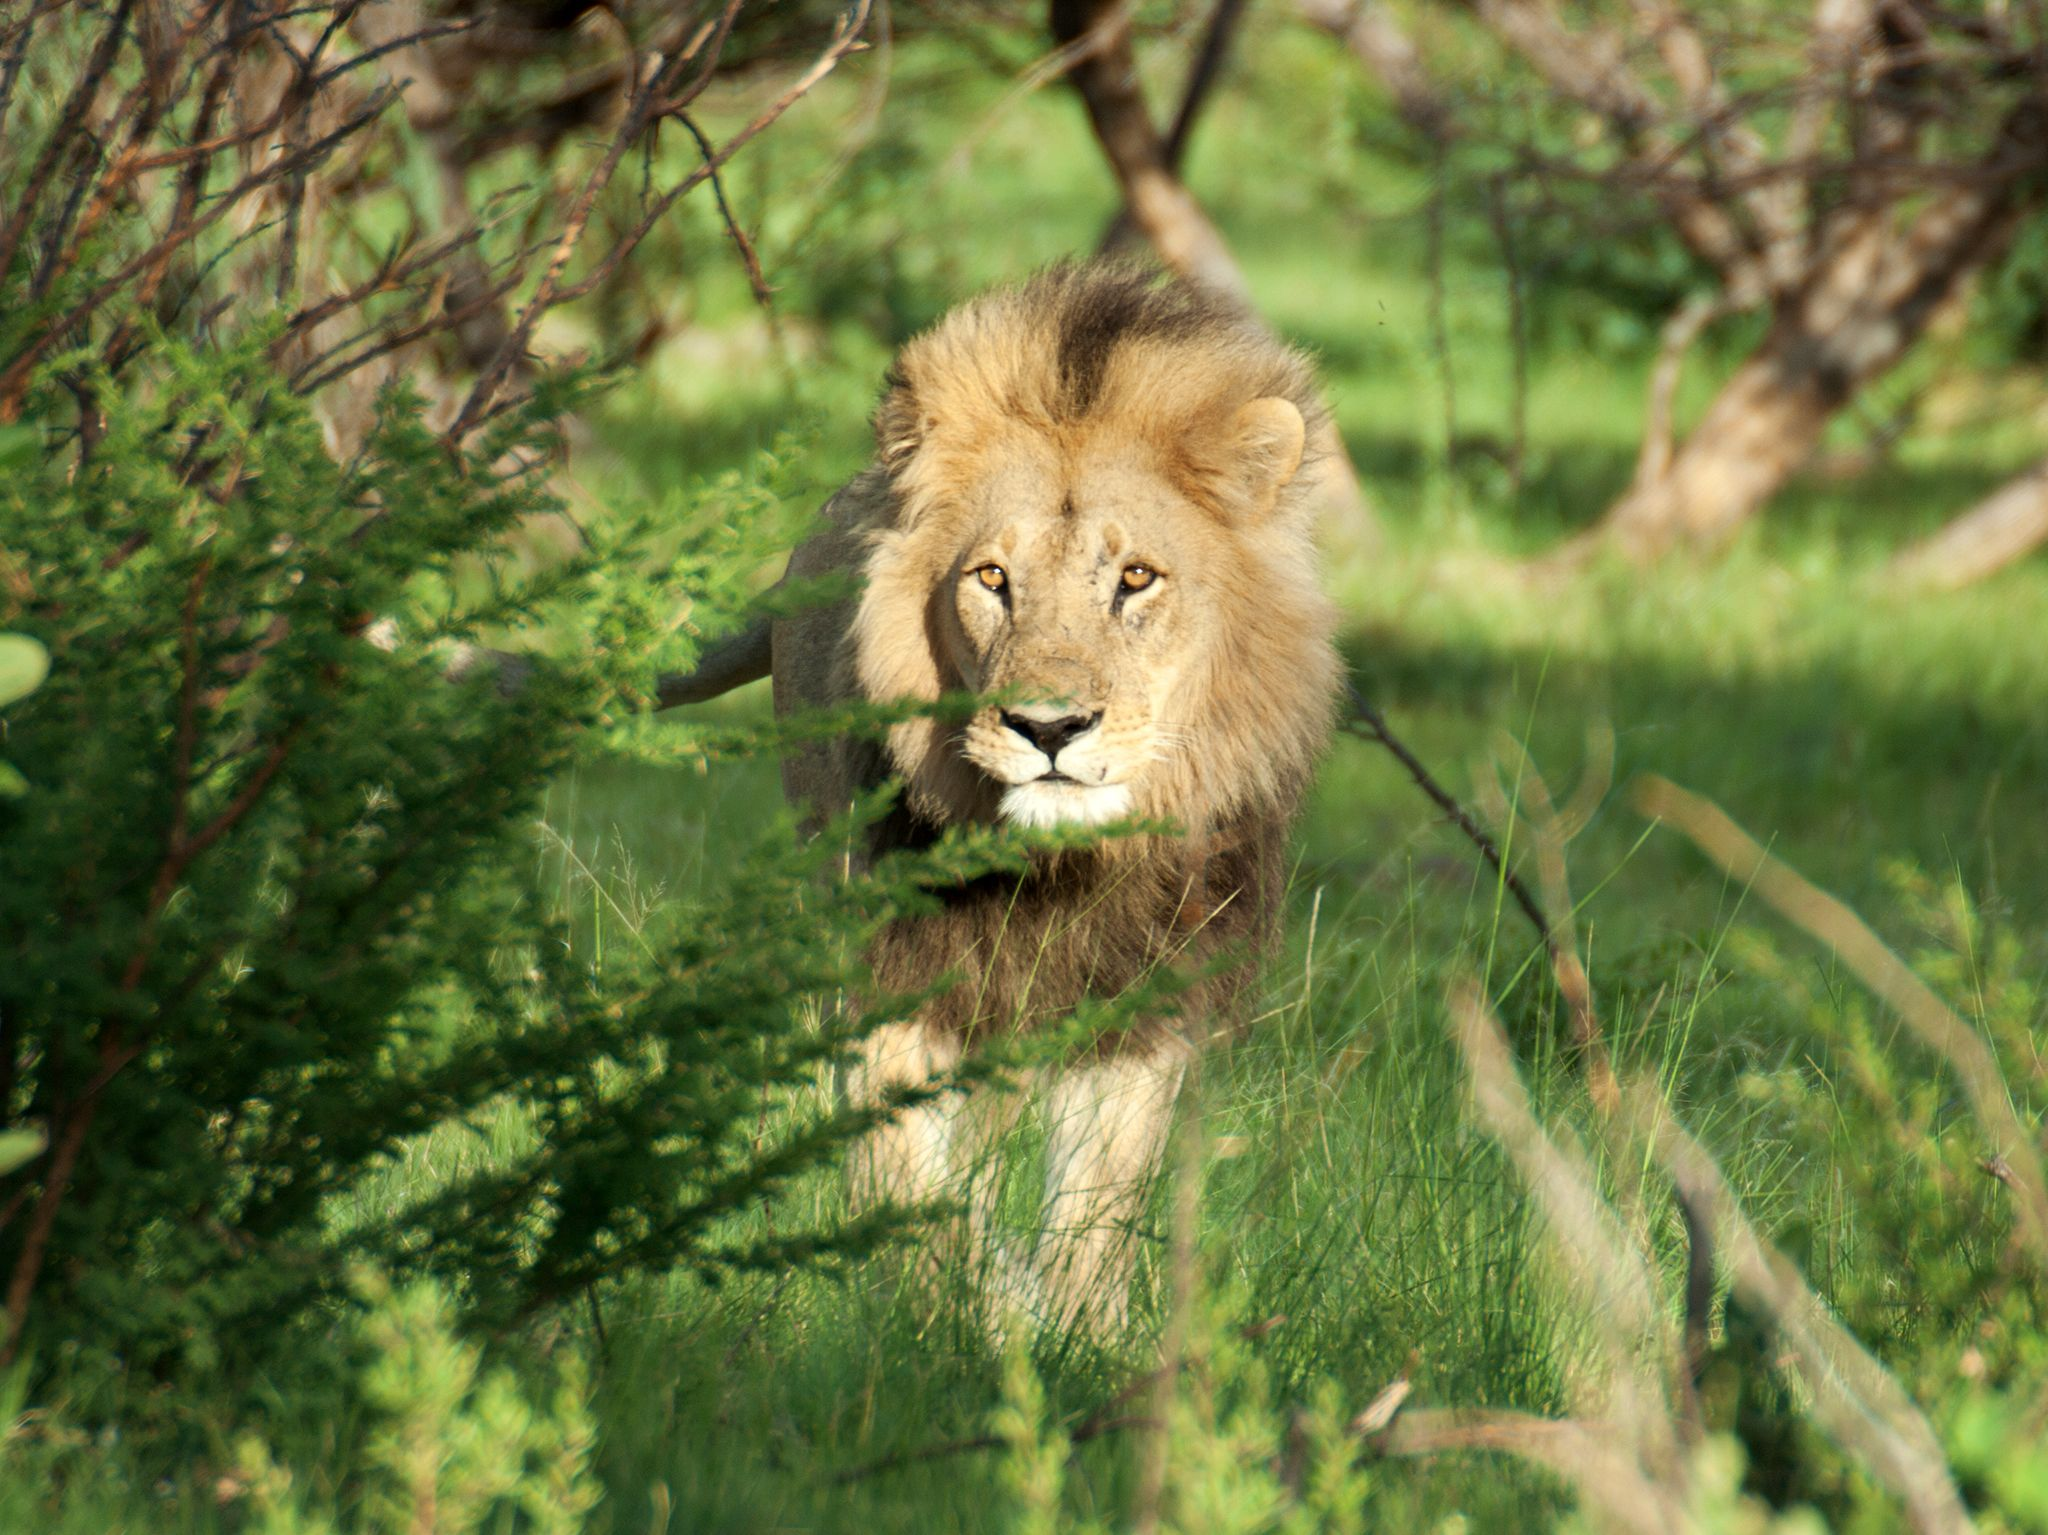 Rwanda: Male lion in lush Rwanda grassland. This image is from Return of the Lion. [Photo of the day - February 2018]